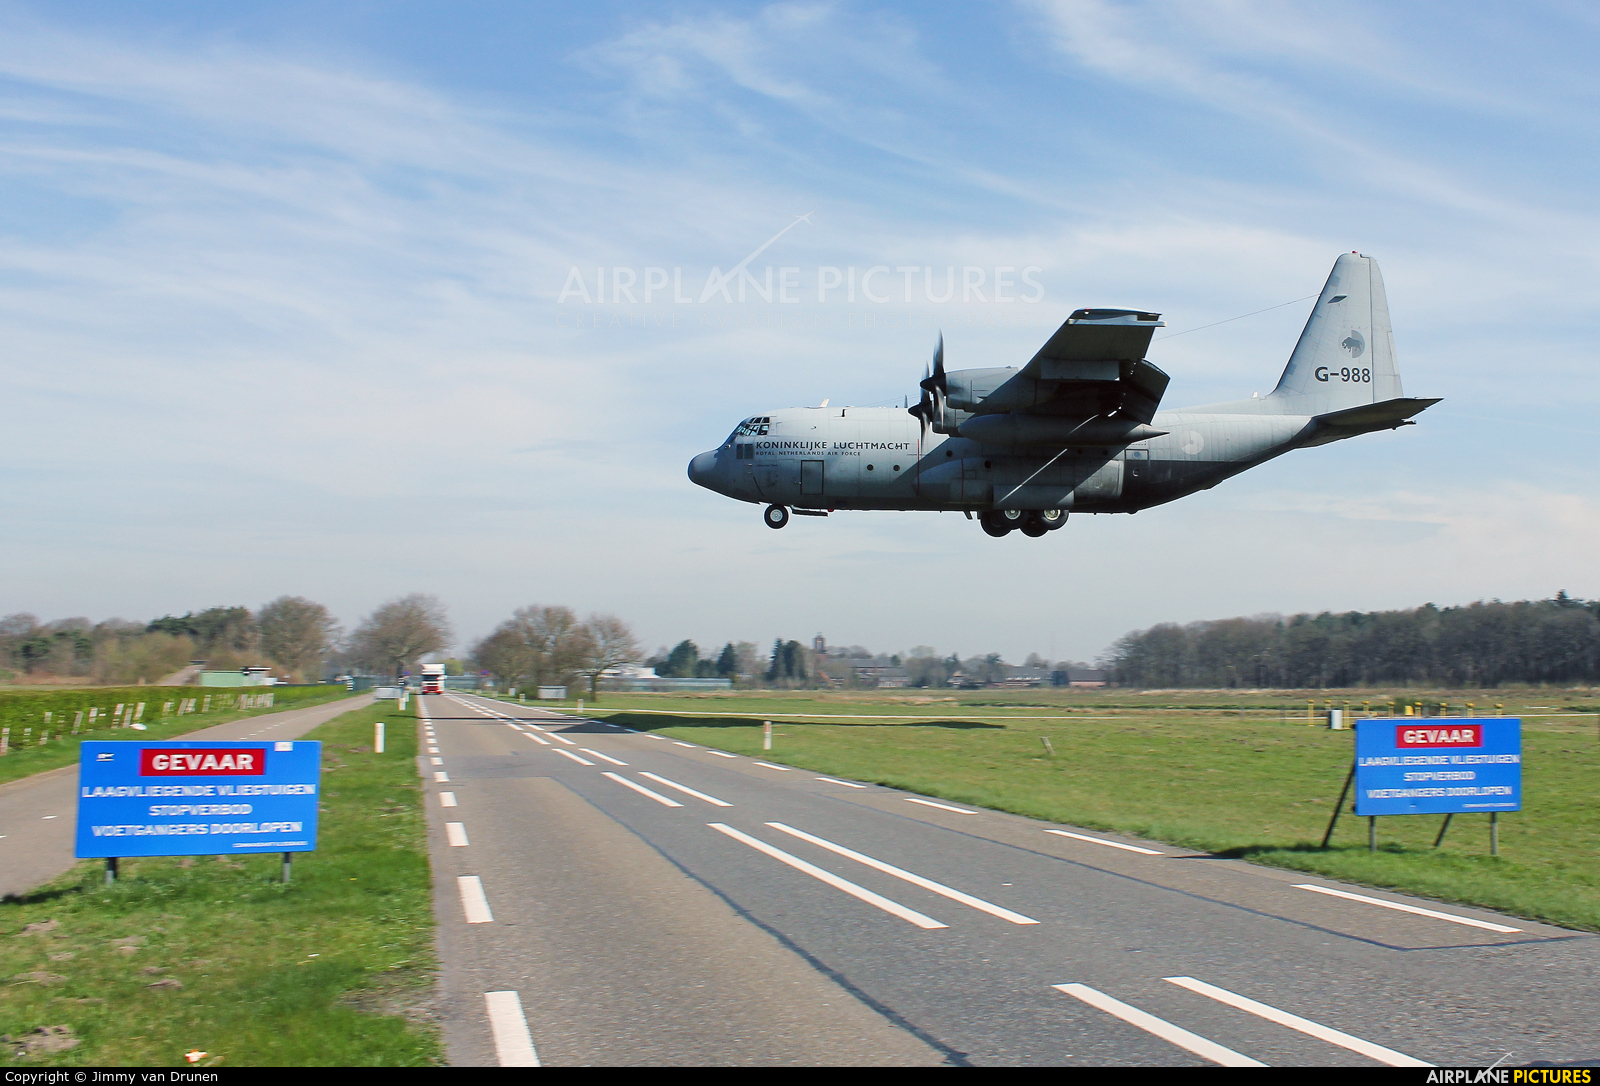 Netherlands - Air Force G-988 aircraft at Gilze-Rijen